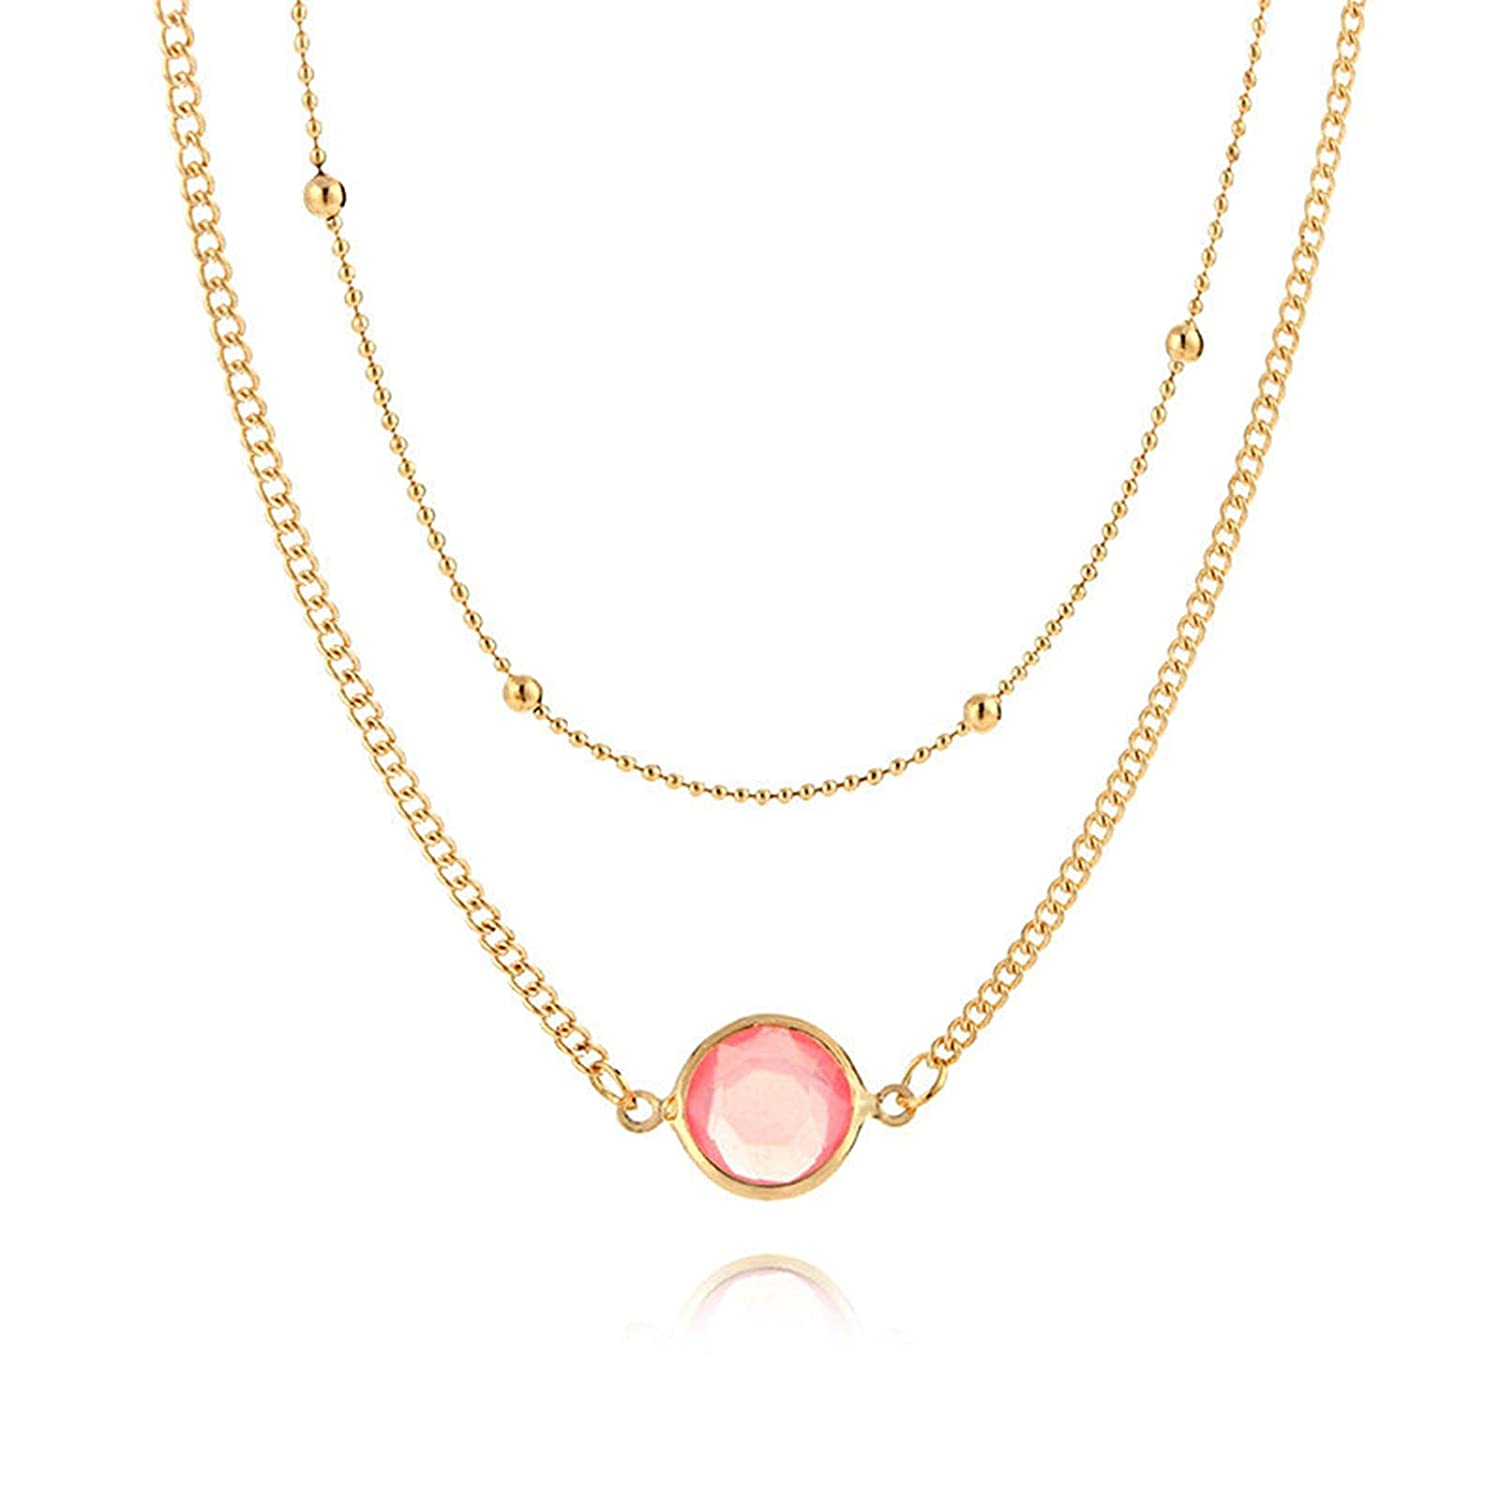 Epinki Gold Plated Women Necklace Round Opal 2 Layers Chain Adjustable Shape Pendant Beach Necklace